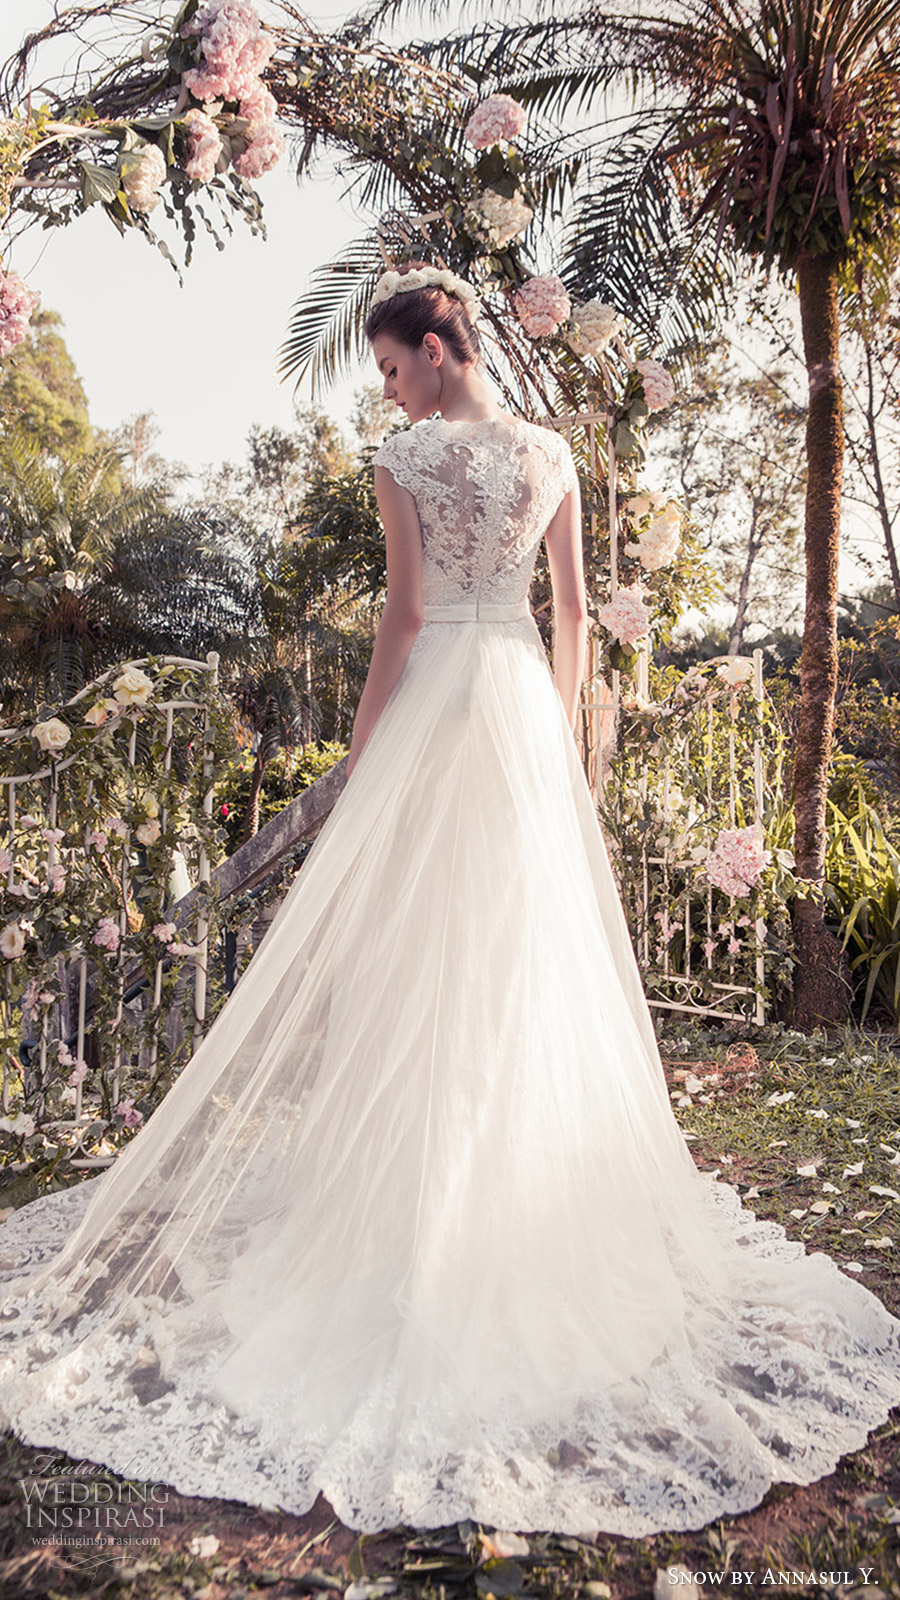 snow annasul y 2017 bridal (sa3350b) lace cap sleeves sweetheart surplice pleated bodice a line wedding dress bv lace hem illusion back